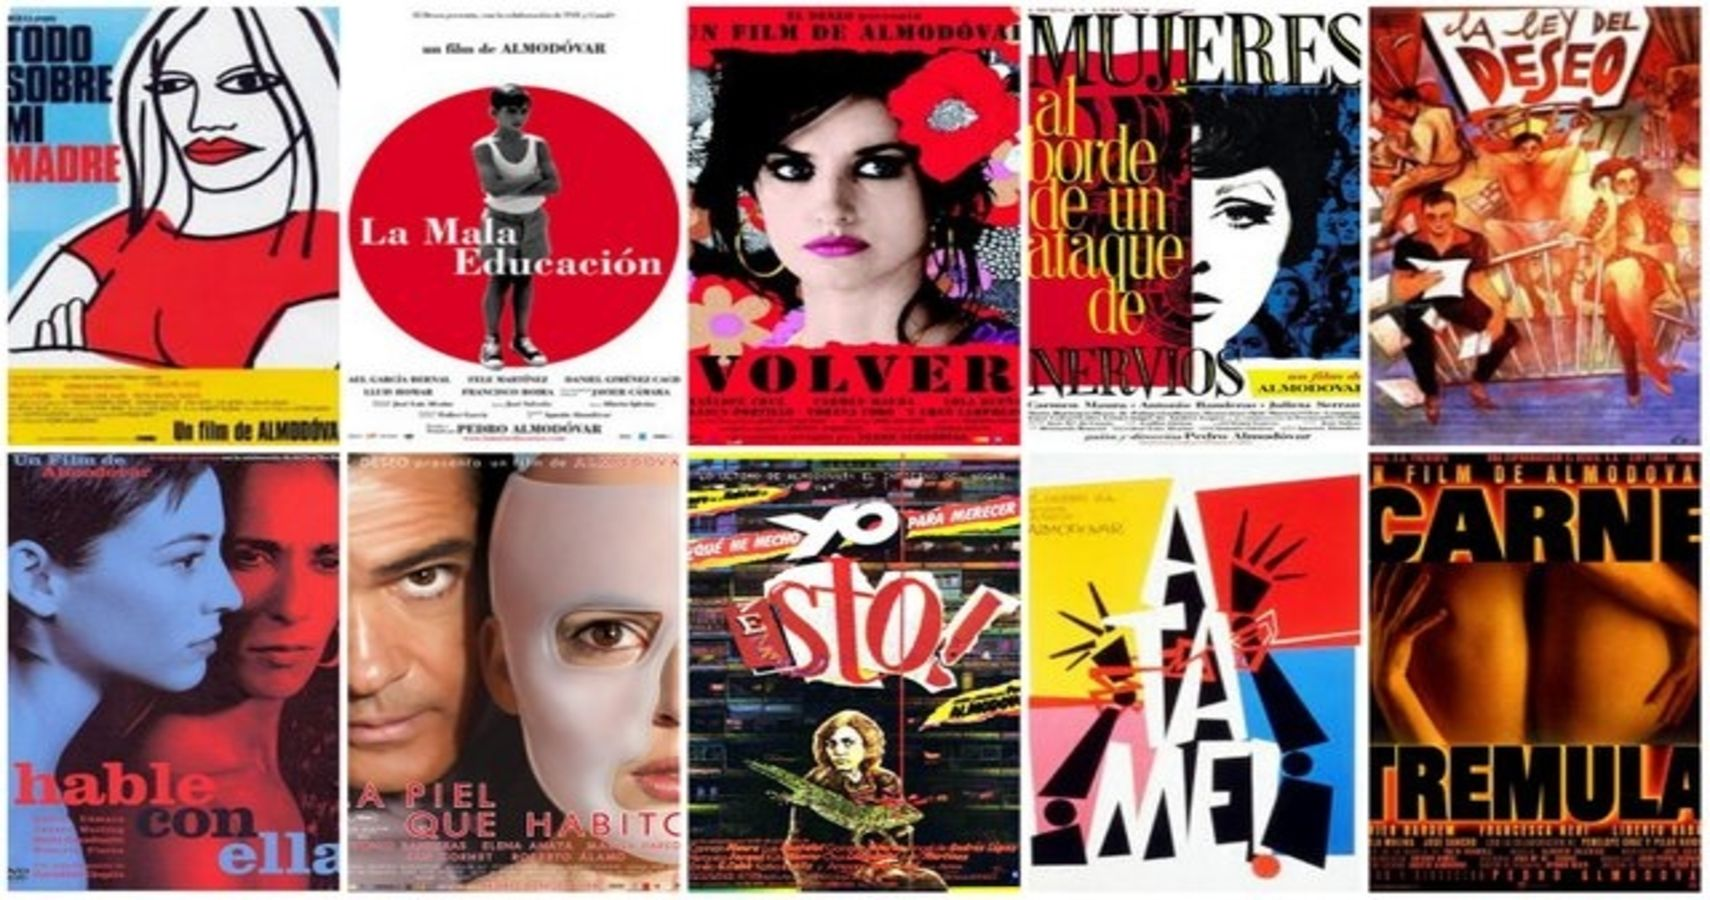 Pedro Almodóvar's 10 Best Films According To Rotten Tomatoes